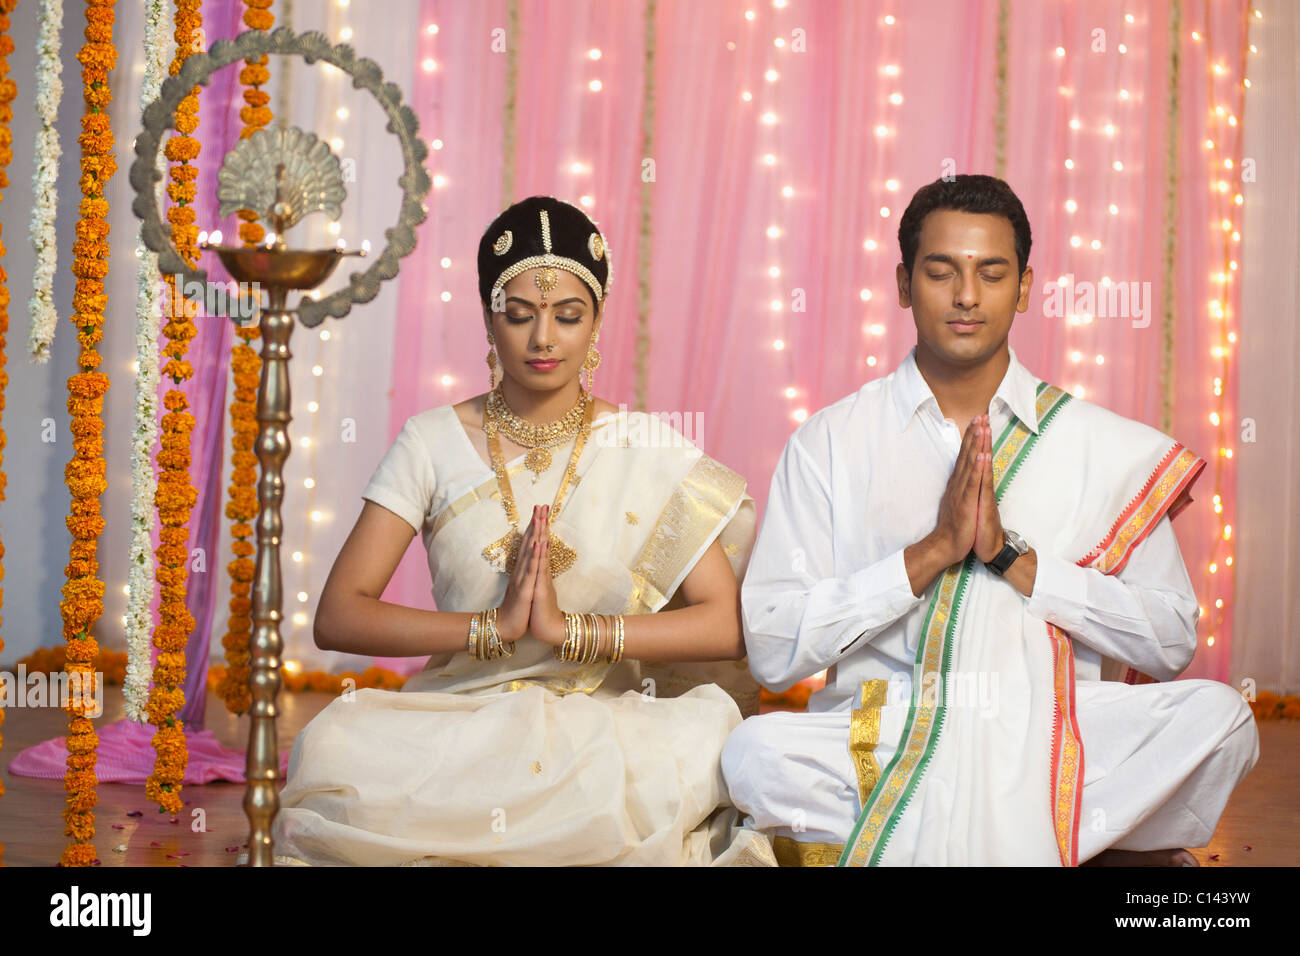 Bride and bridegroom in traditional South Indian dress praying at ...